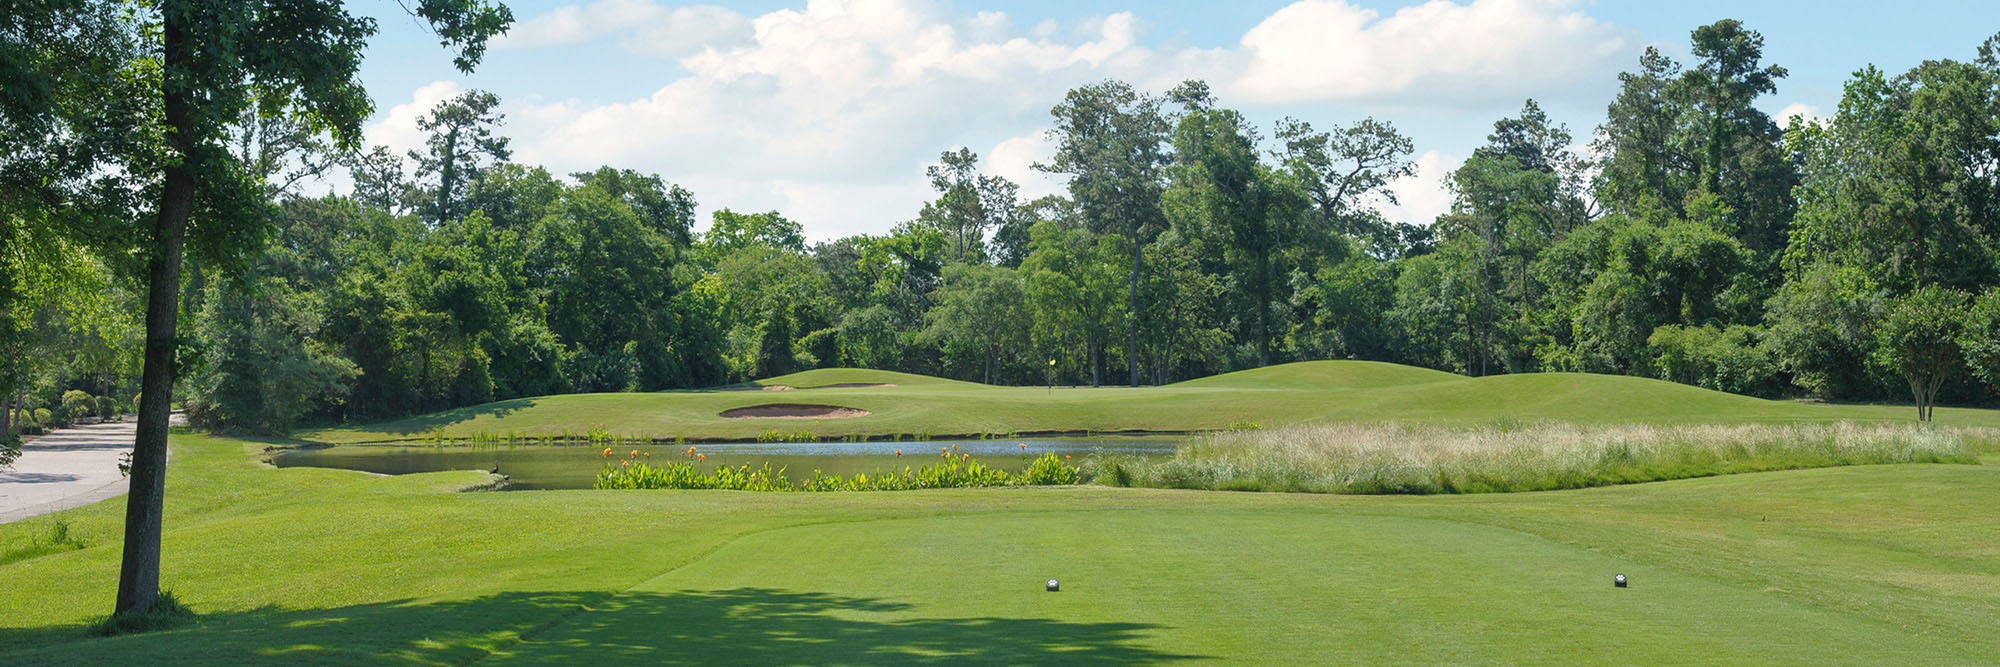 Golf Course Image - Woodlands-Panther Trail Course No.17